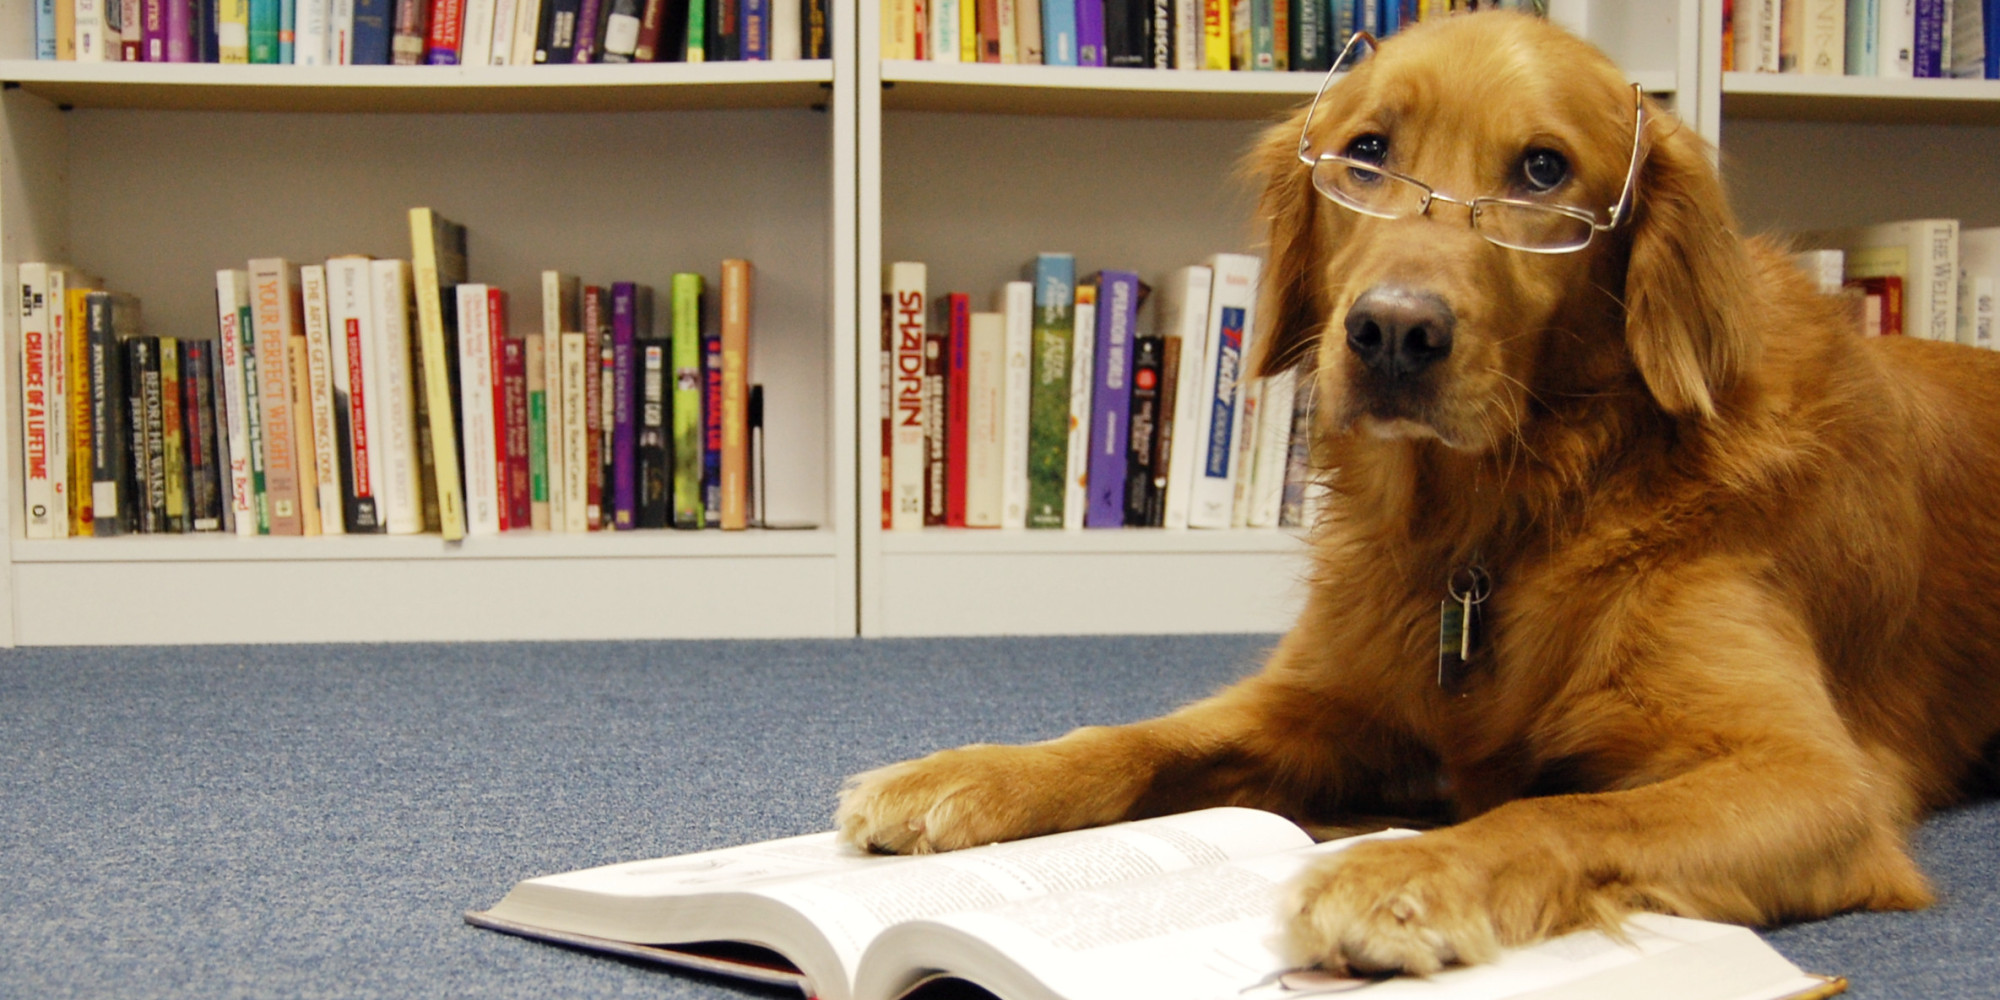 Reading Books To Shelter Dogs Makes The World A Little Bit